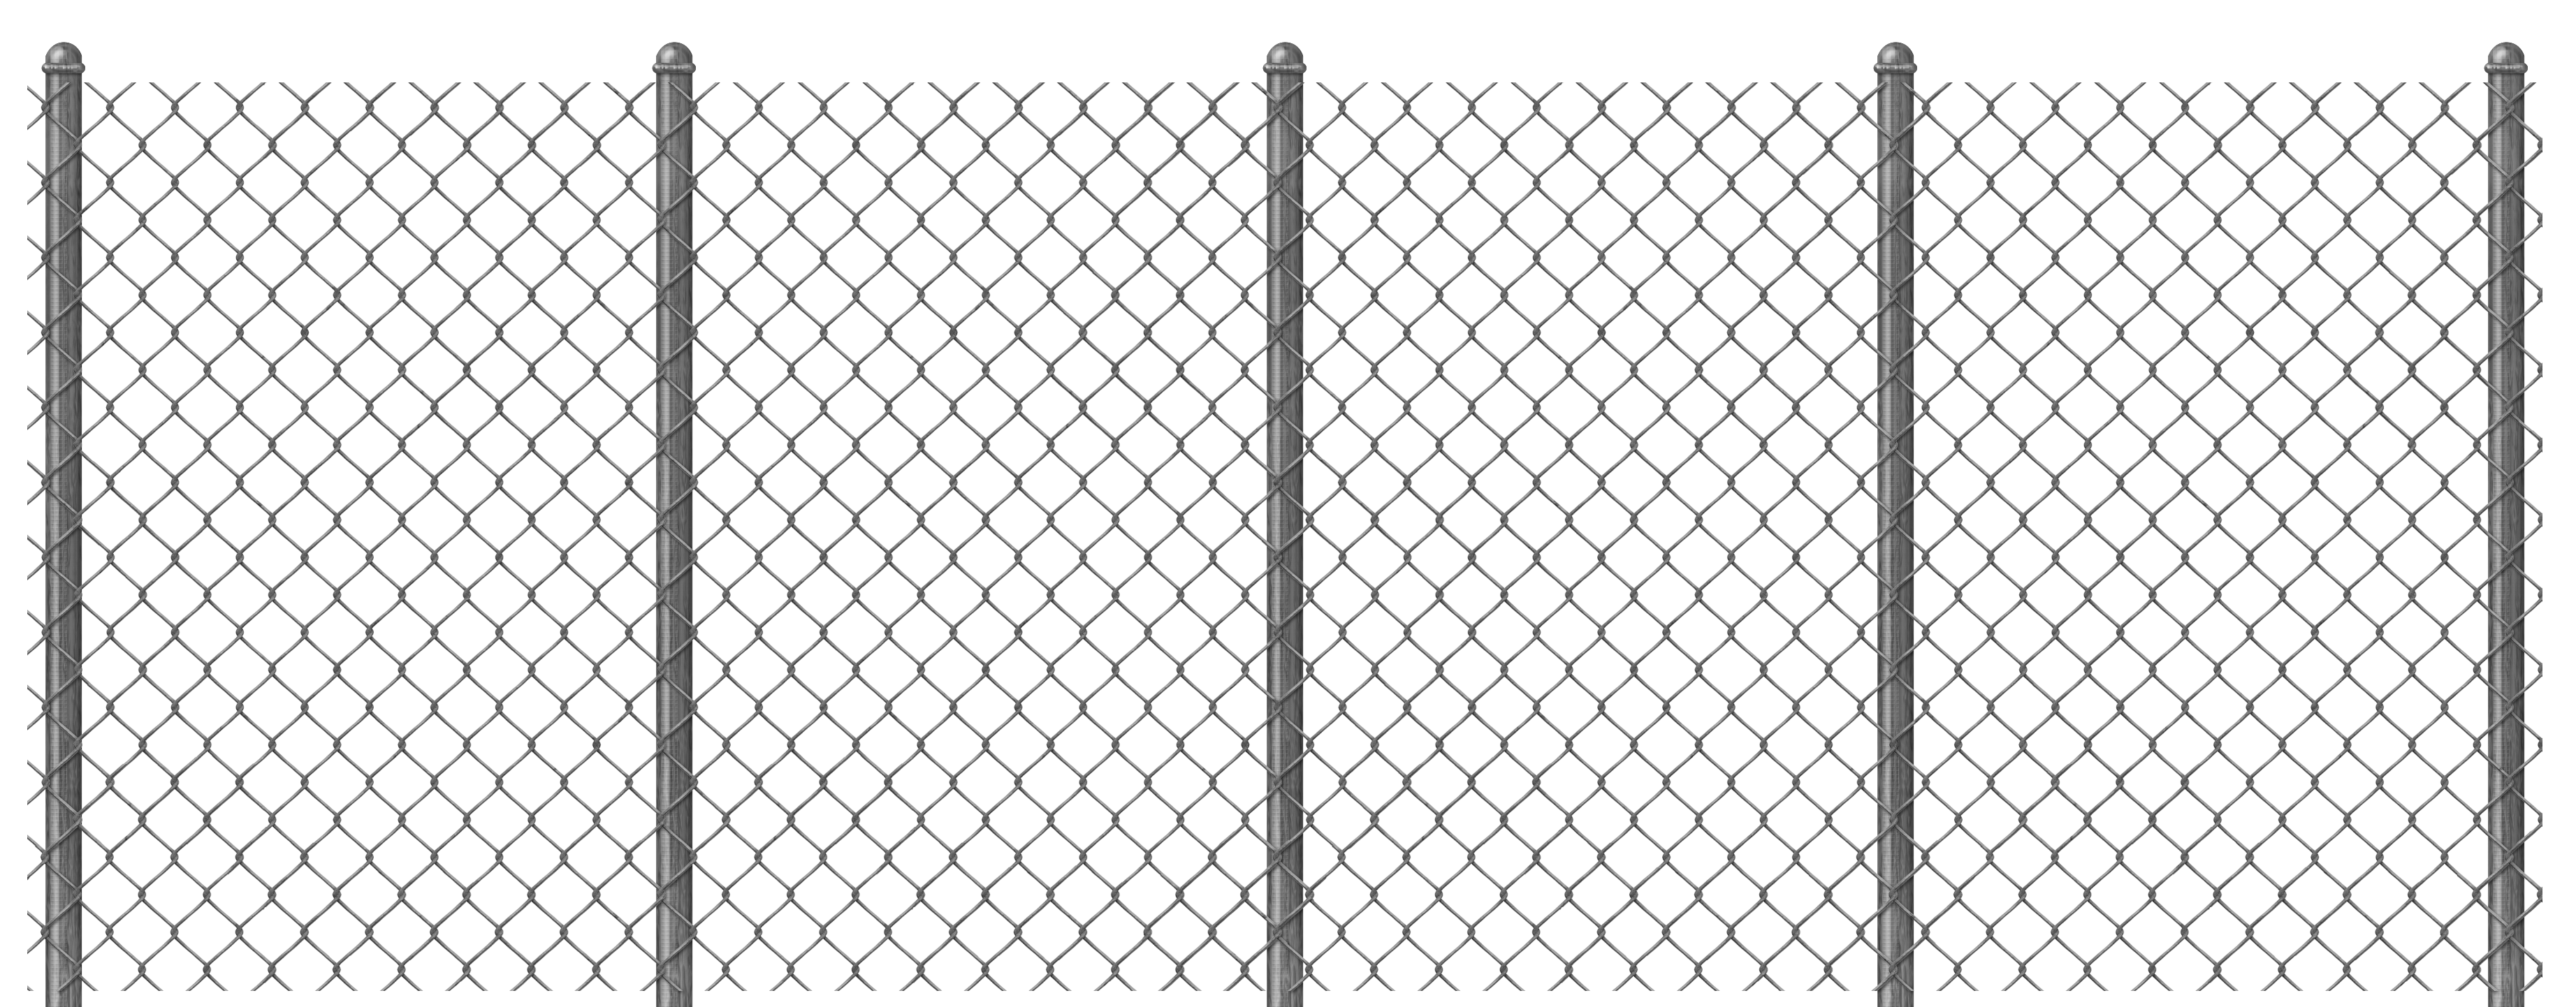 Fence clipart iron fence. Download free png transparent